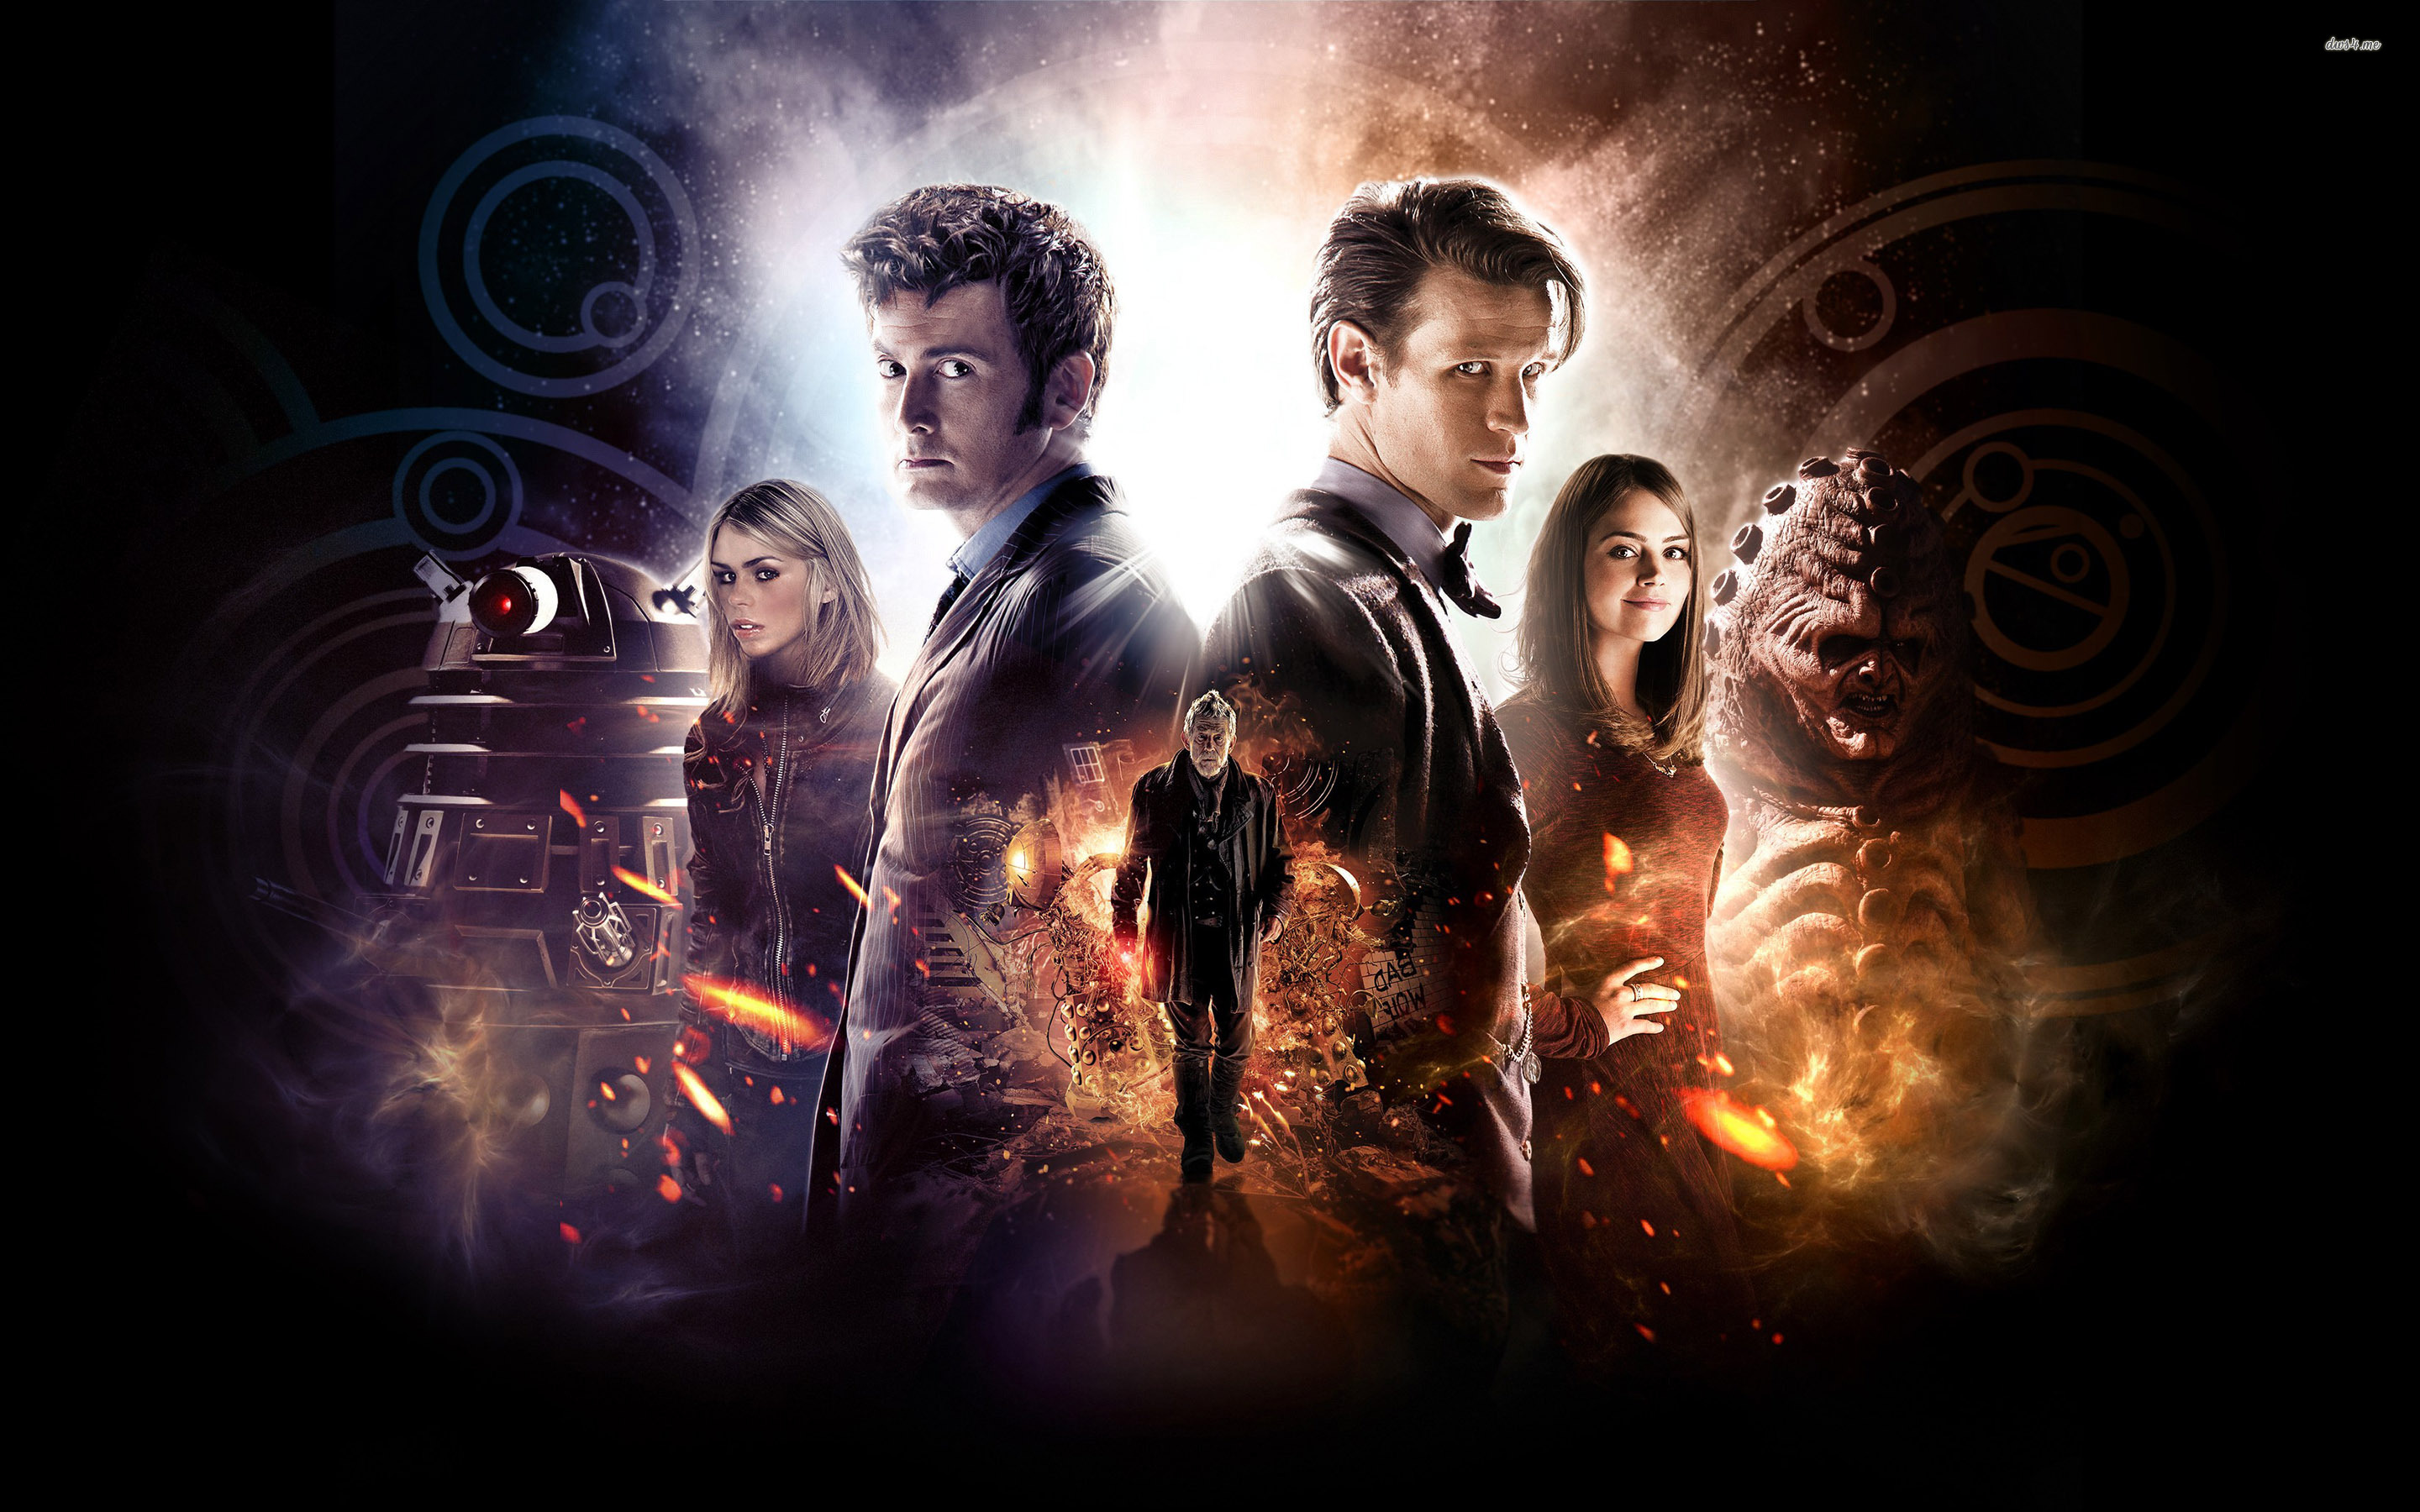 Doctor Who 50th Anniversary Poster wallpapers HD   388912 2880x1800